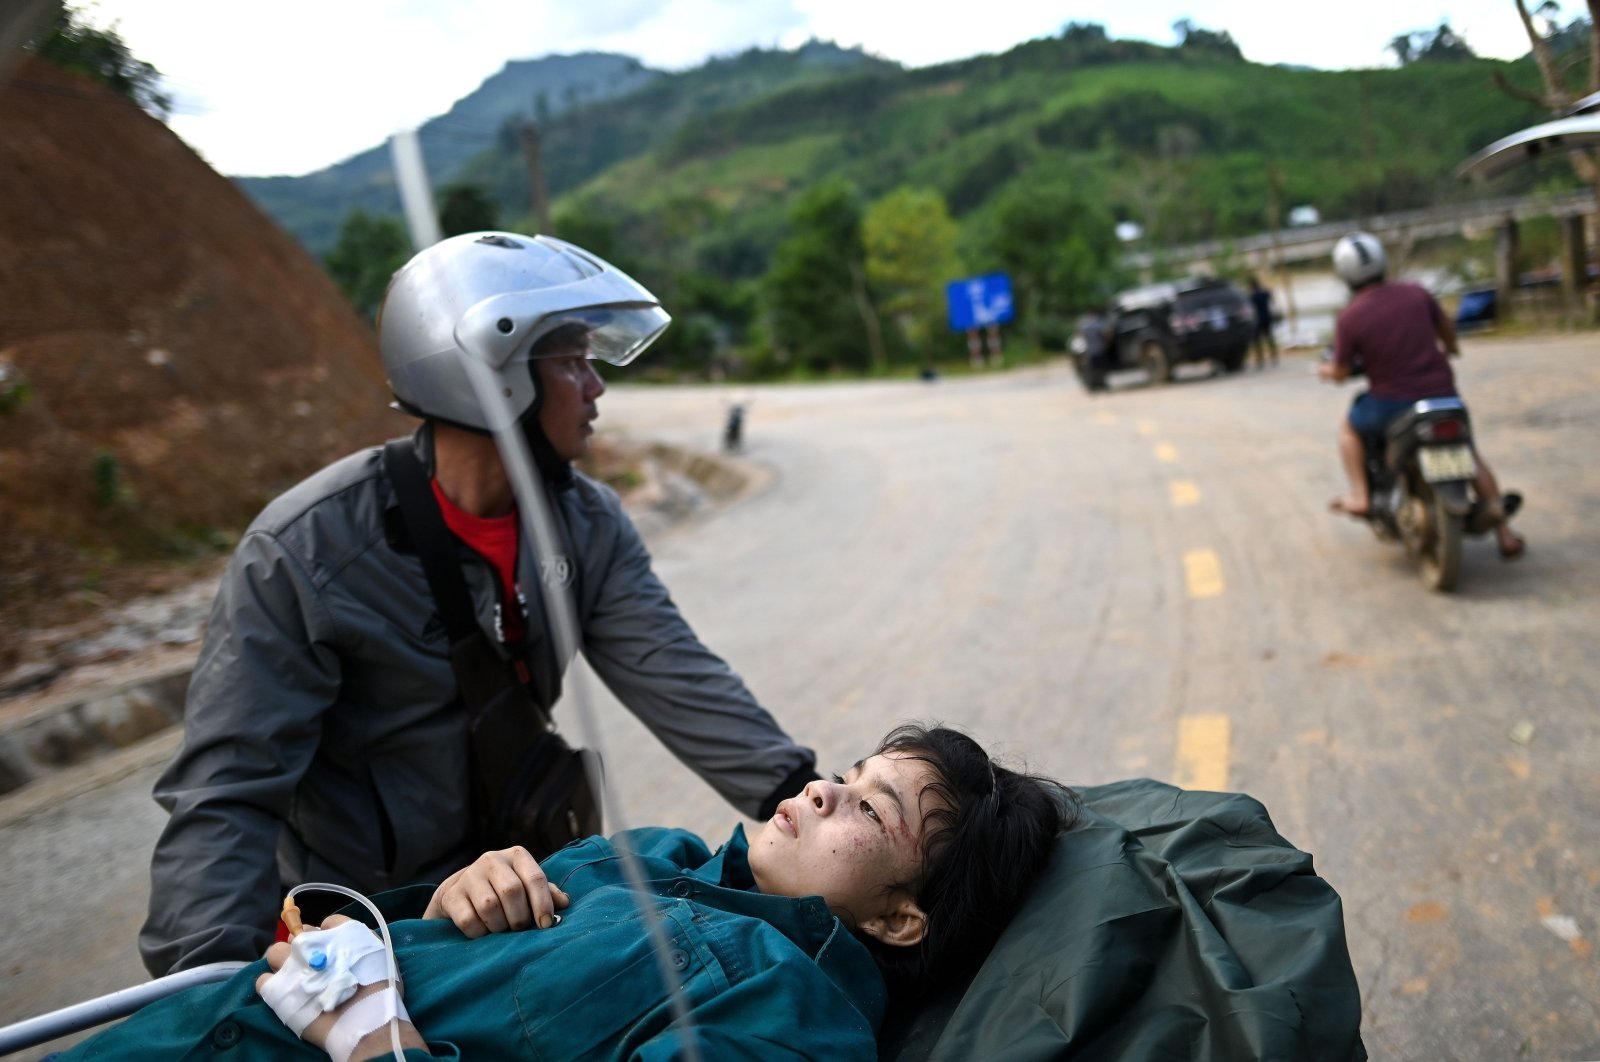 An injured woman is carried on a stretcher to an ambulance after being rescued from a landslide in Tra Leng commune in central Vietnam's Quang Nam province on October 29, 2020, in the aftermath of Typhoon Molave. (AFP Photo)